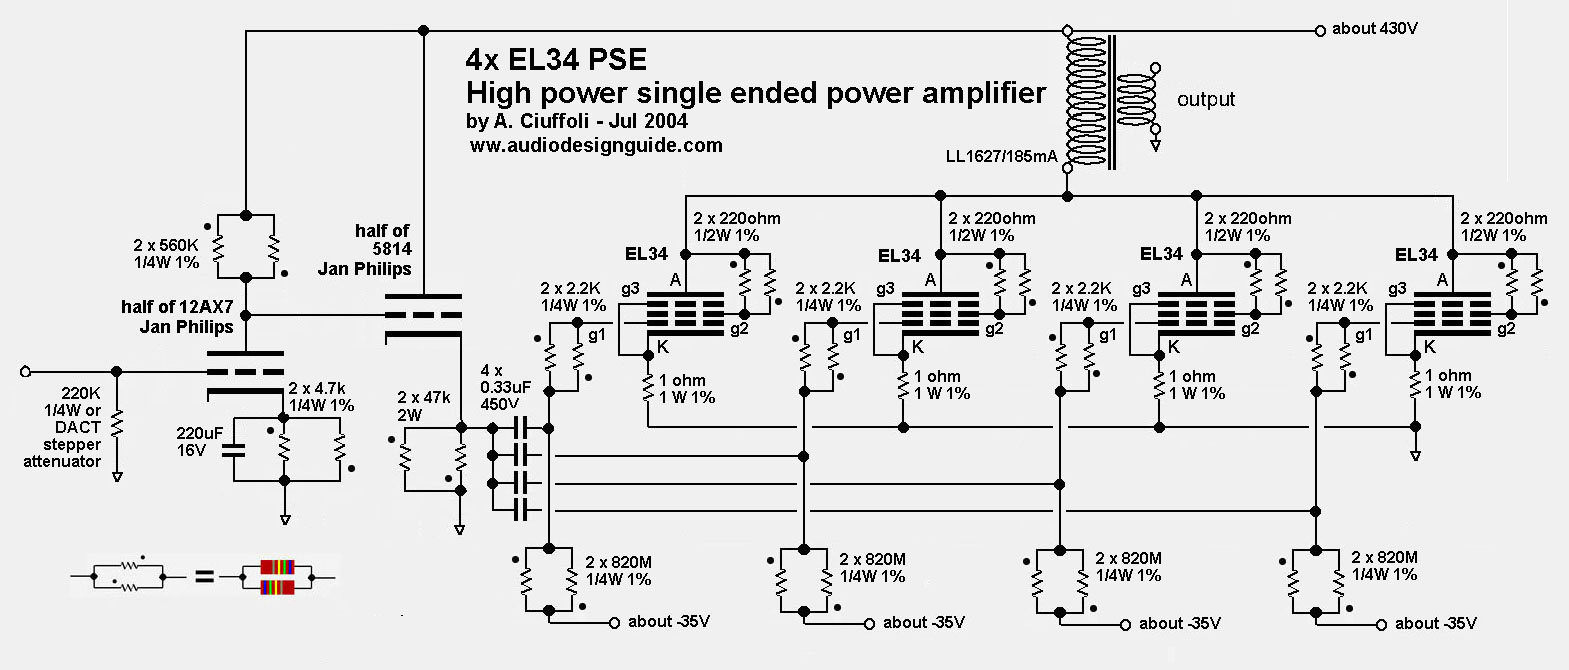 El34 Single Ended Se Tube Amplifier Schematic Radio Vacuum Otl Headphone Circuit Diagram Amplifiercircuit